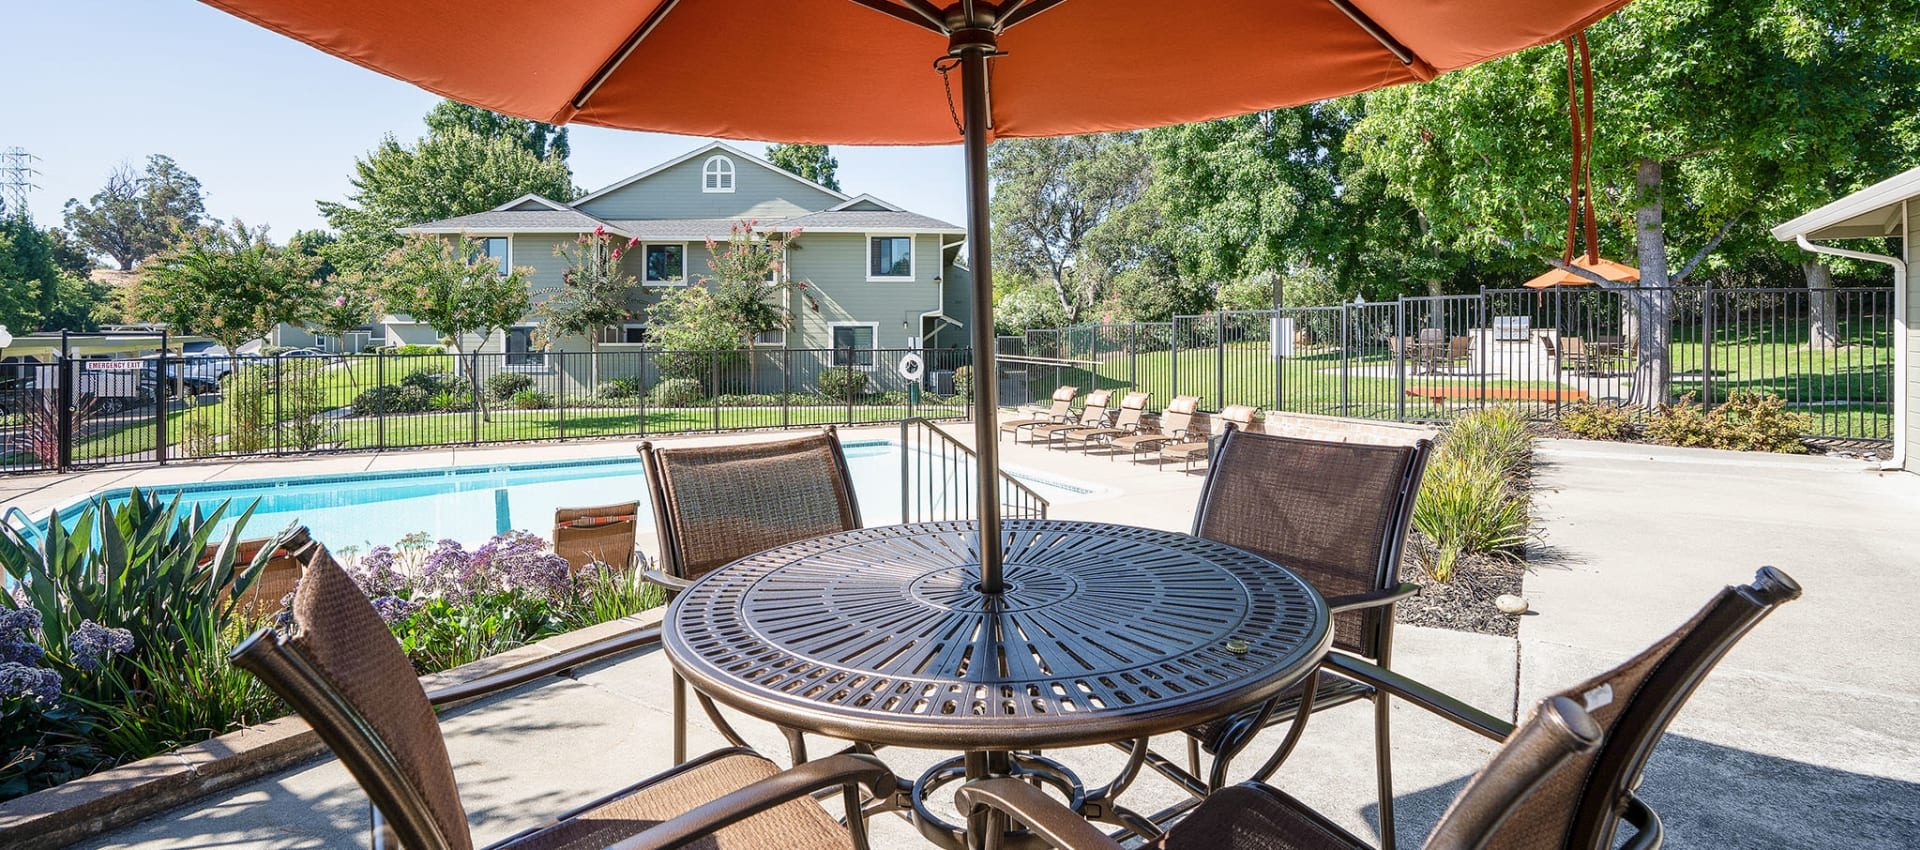 Outdoor Seating at Ridgecrest Apartment Homes in Martinez, California